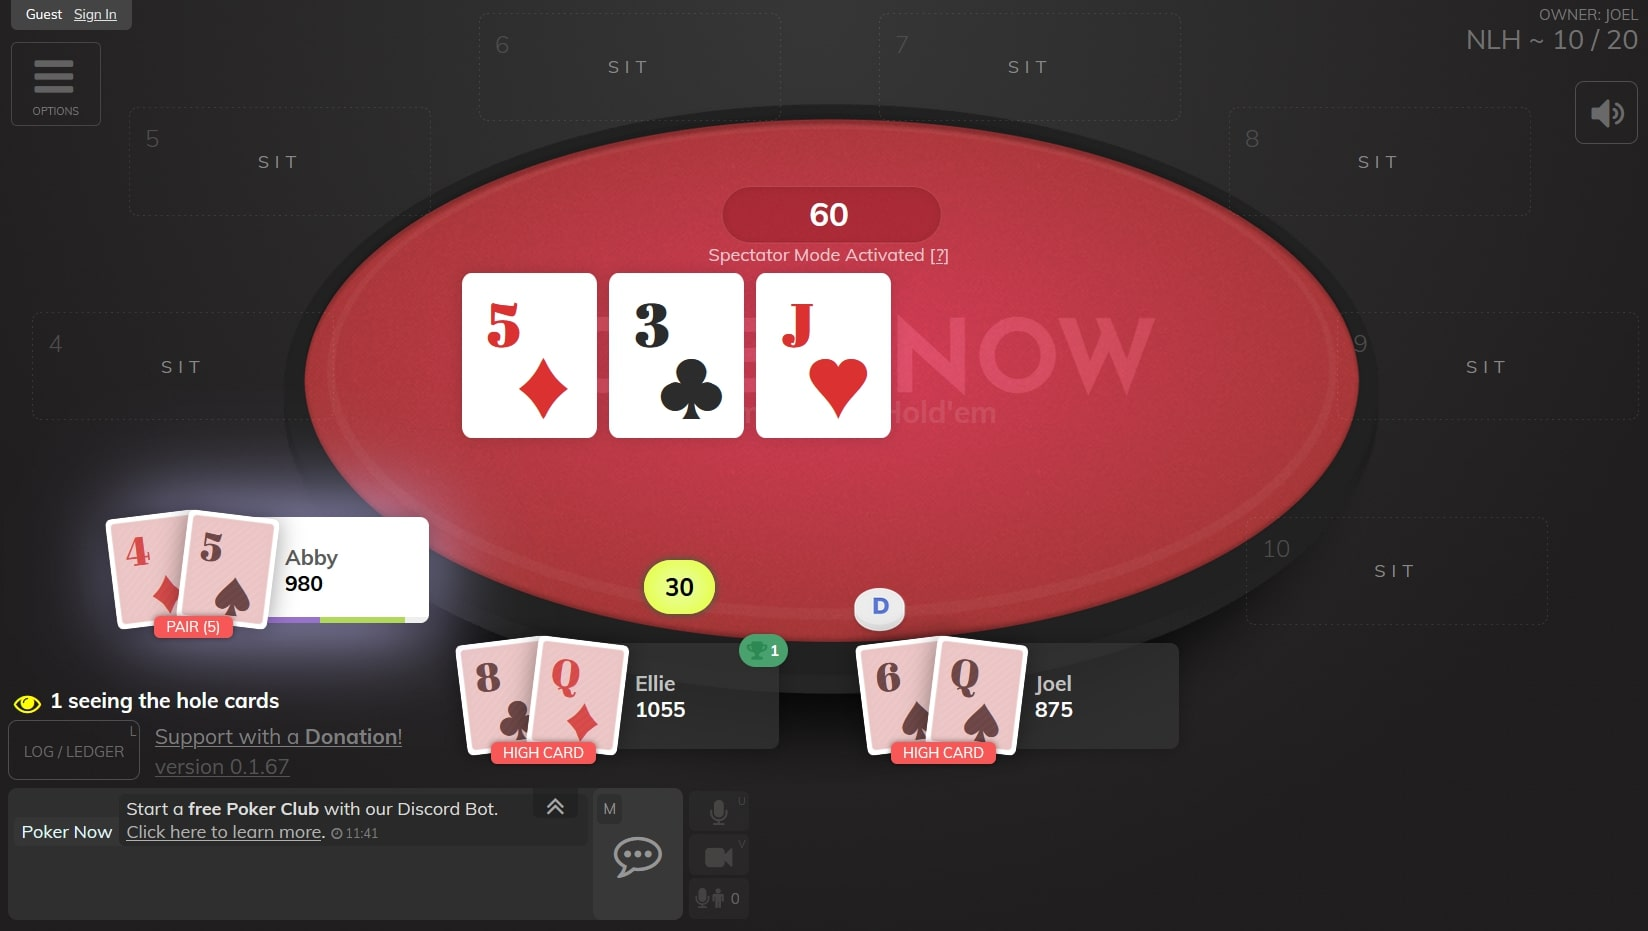 Poker now table with spectator mode enabled